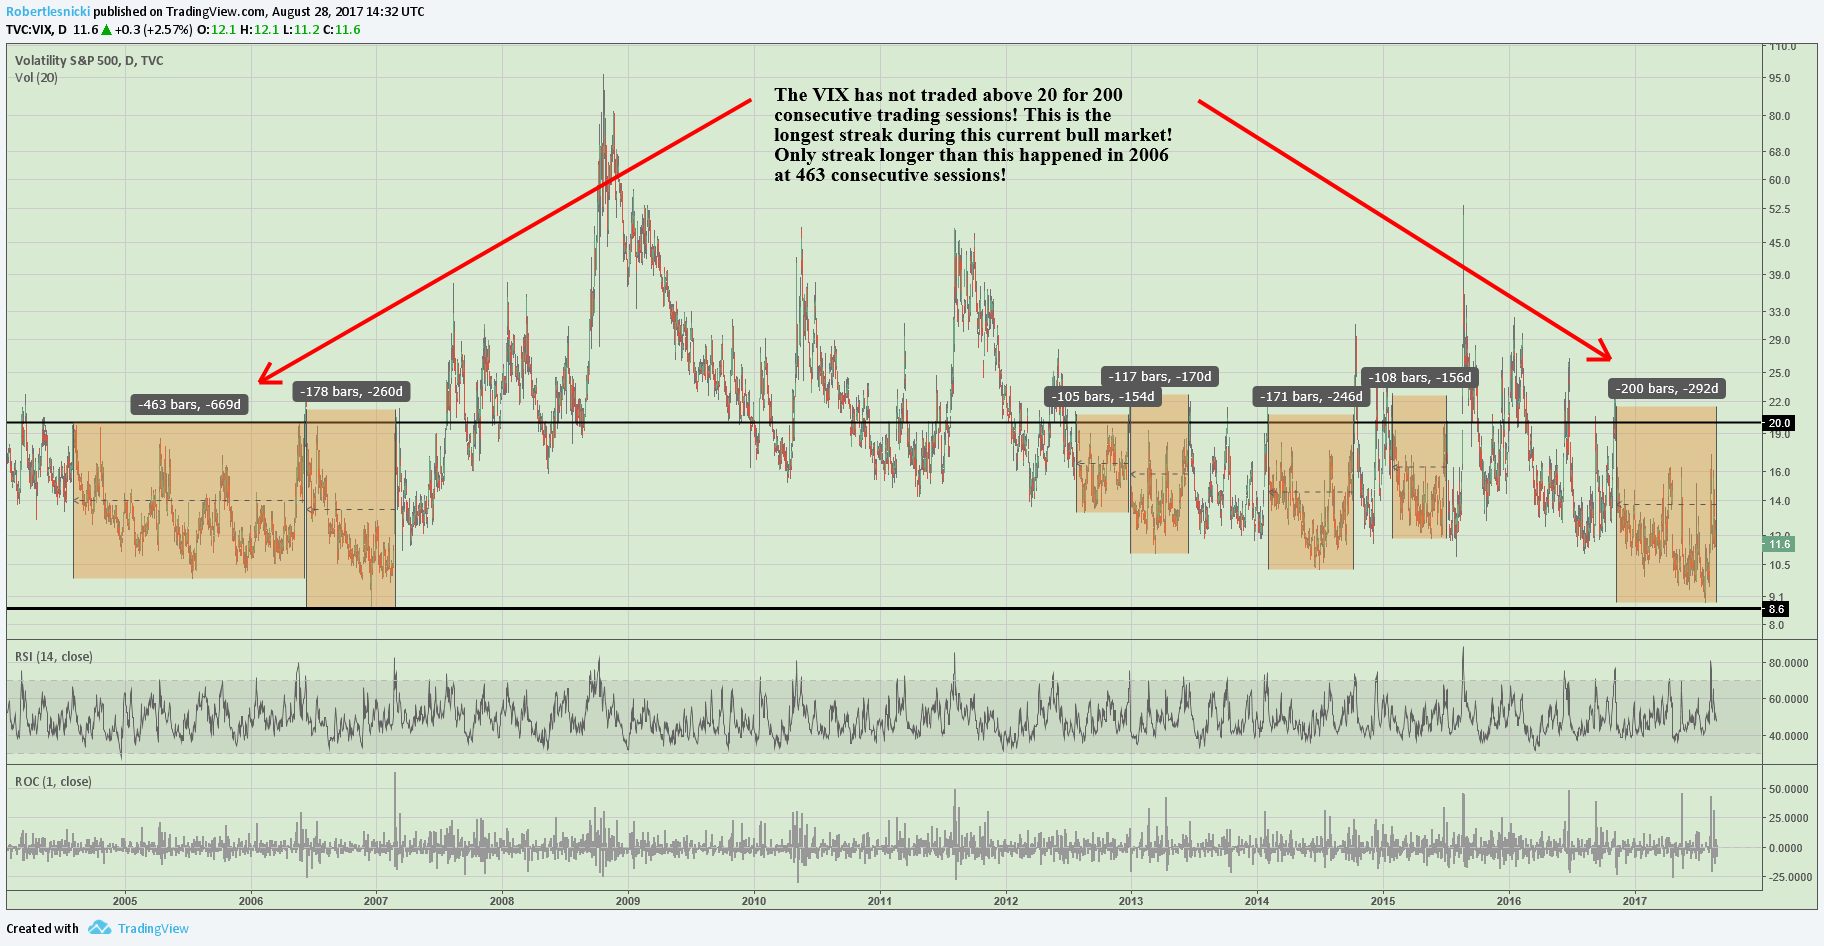 Leading up to the financial crisis, the VIX had an amazing streak of 463 consecutive trading sessions where it didn't trade above 20! This streak lasted for almost 2 full years!